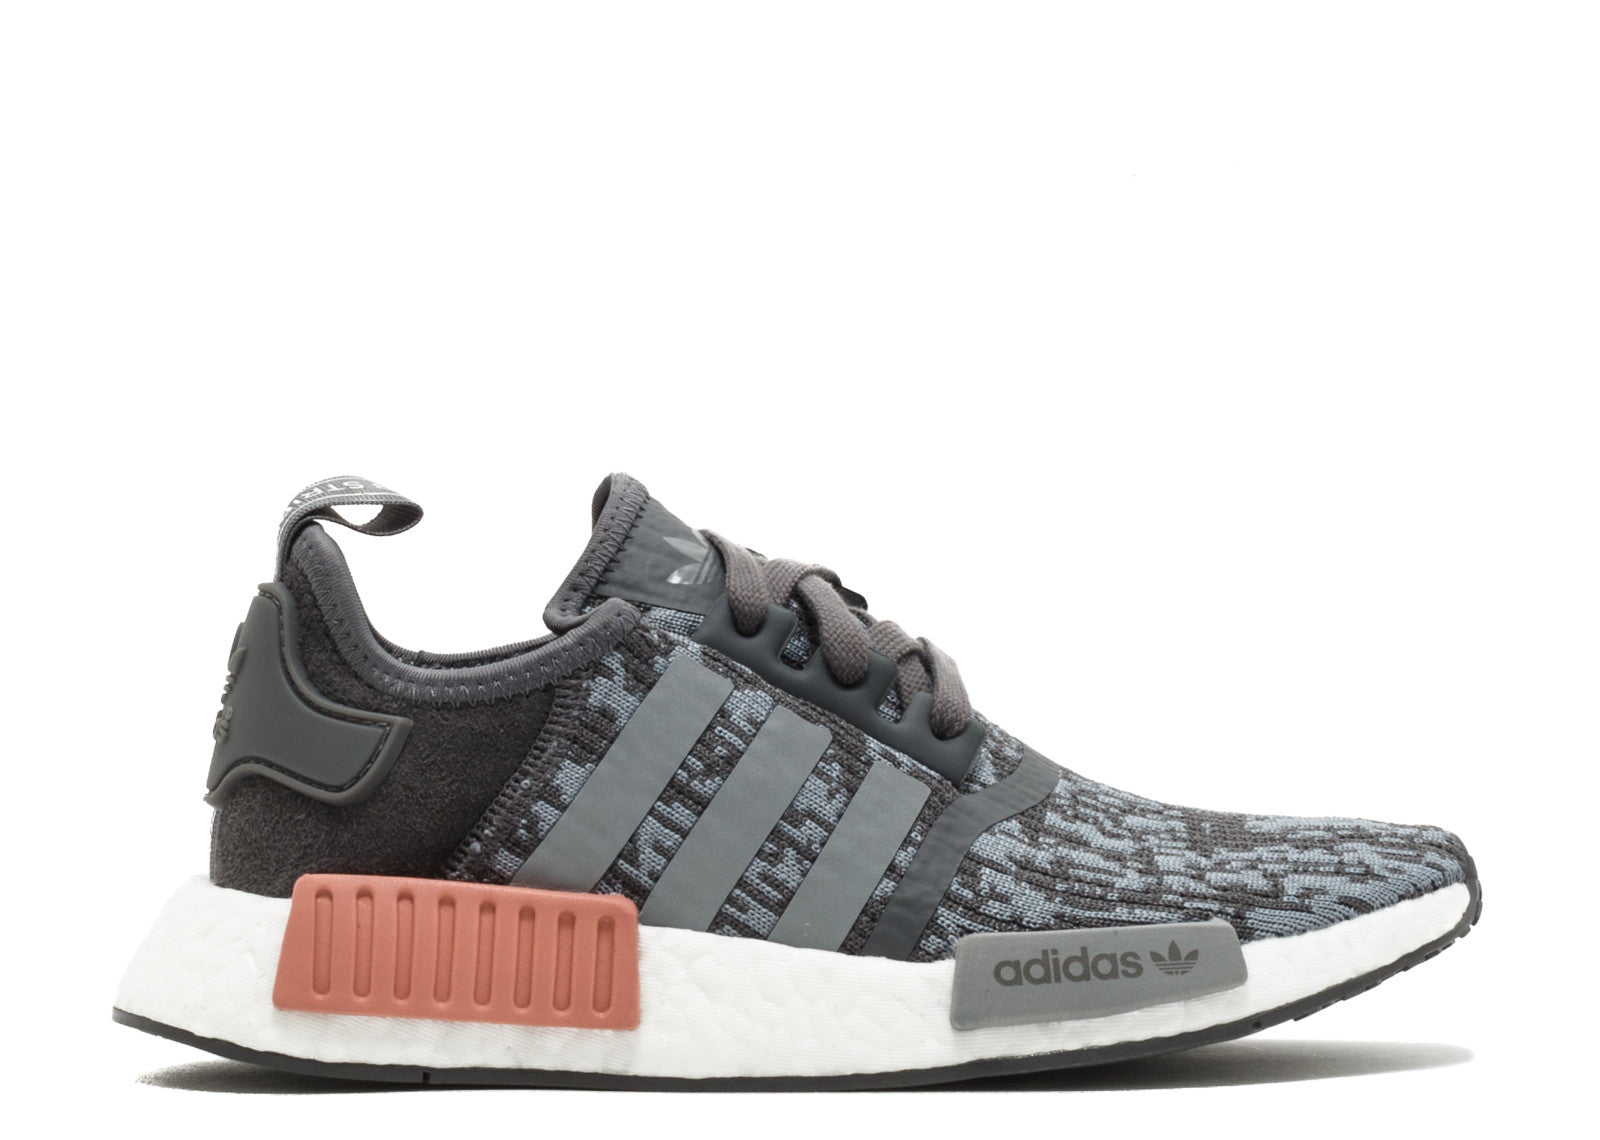 d7e8cac953f94 Adidas NMDS R1 Women s Raw Pink – JP Kicks   Drinks